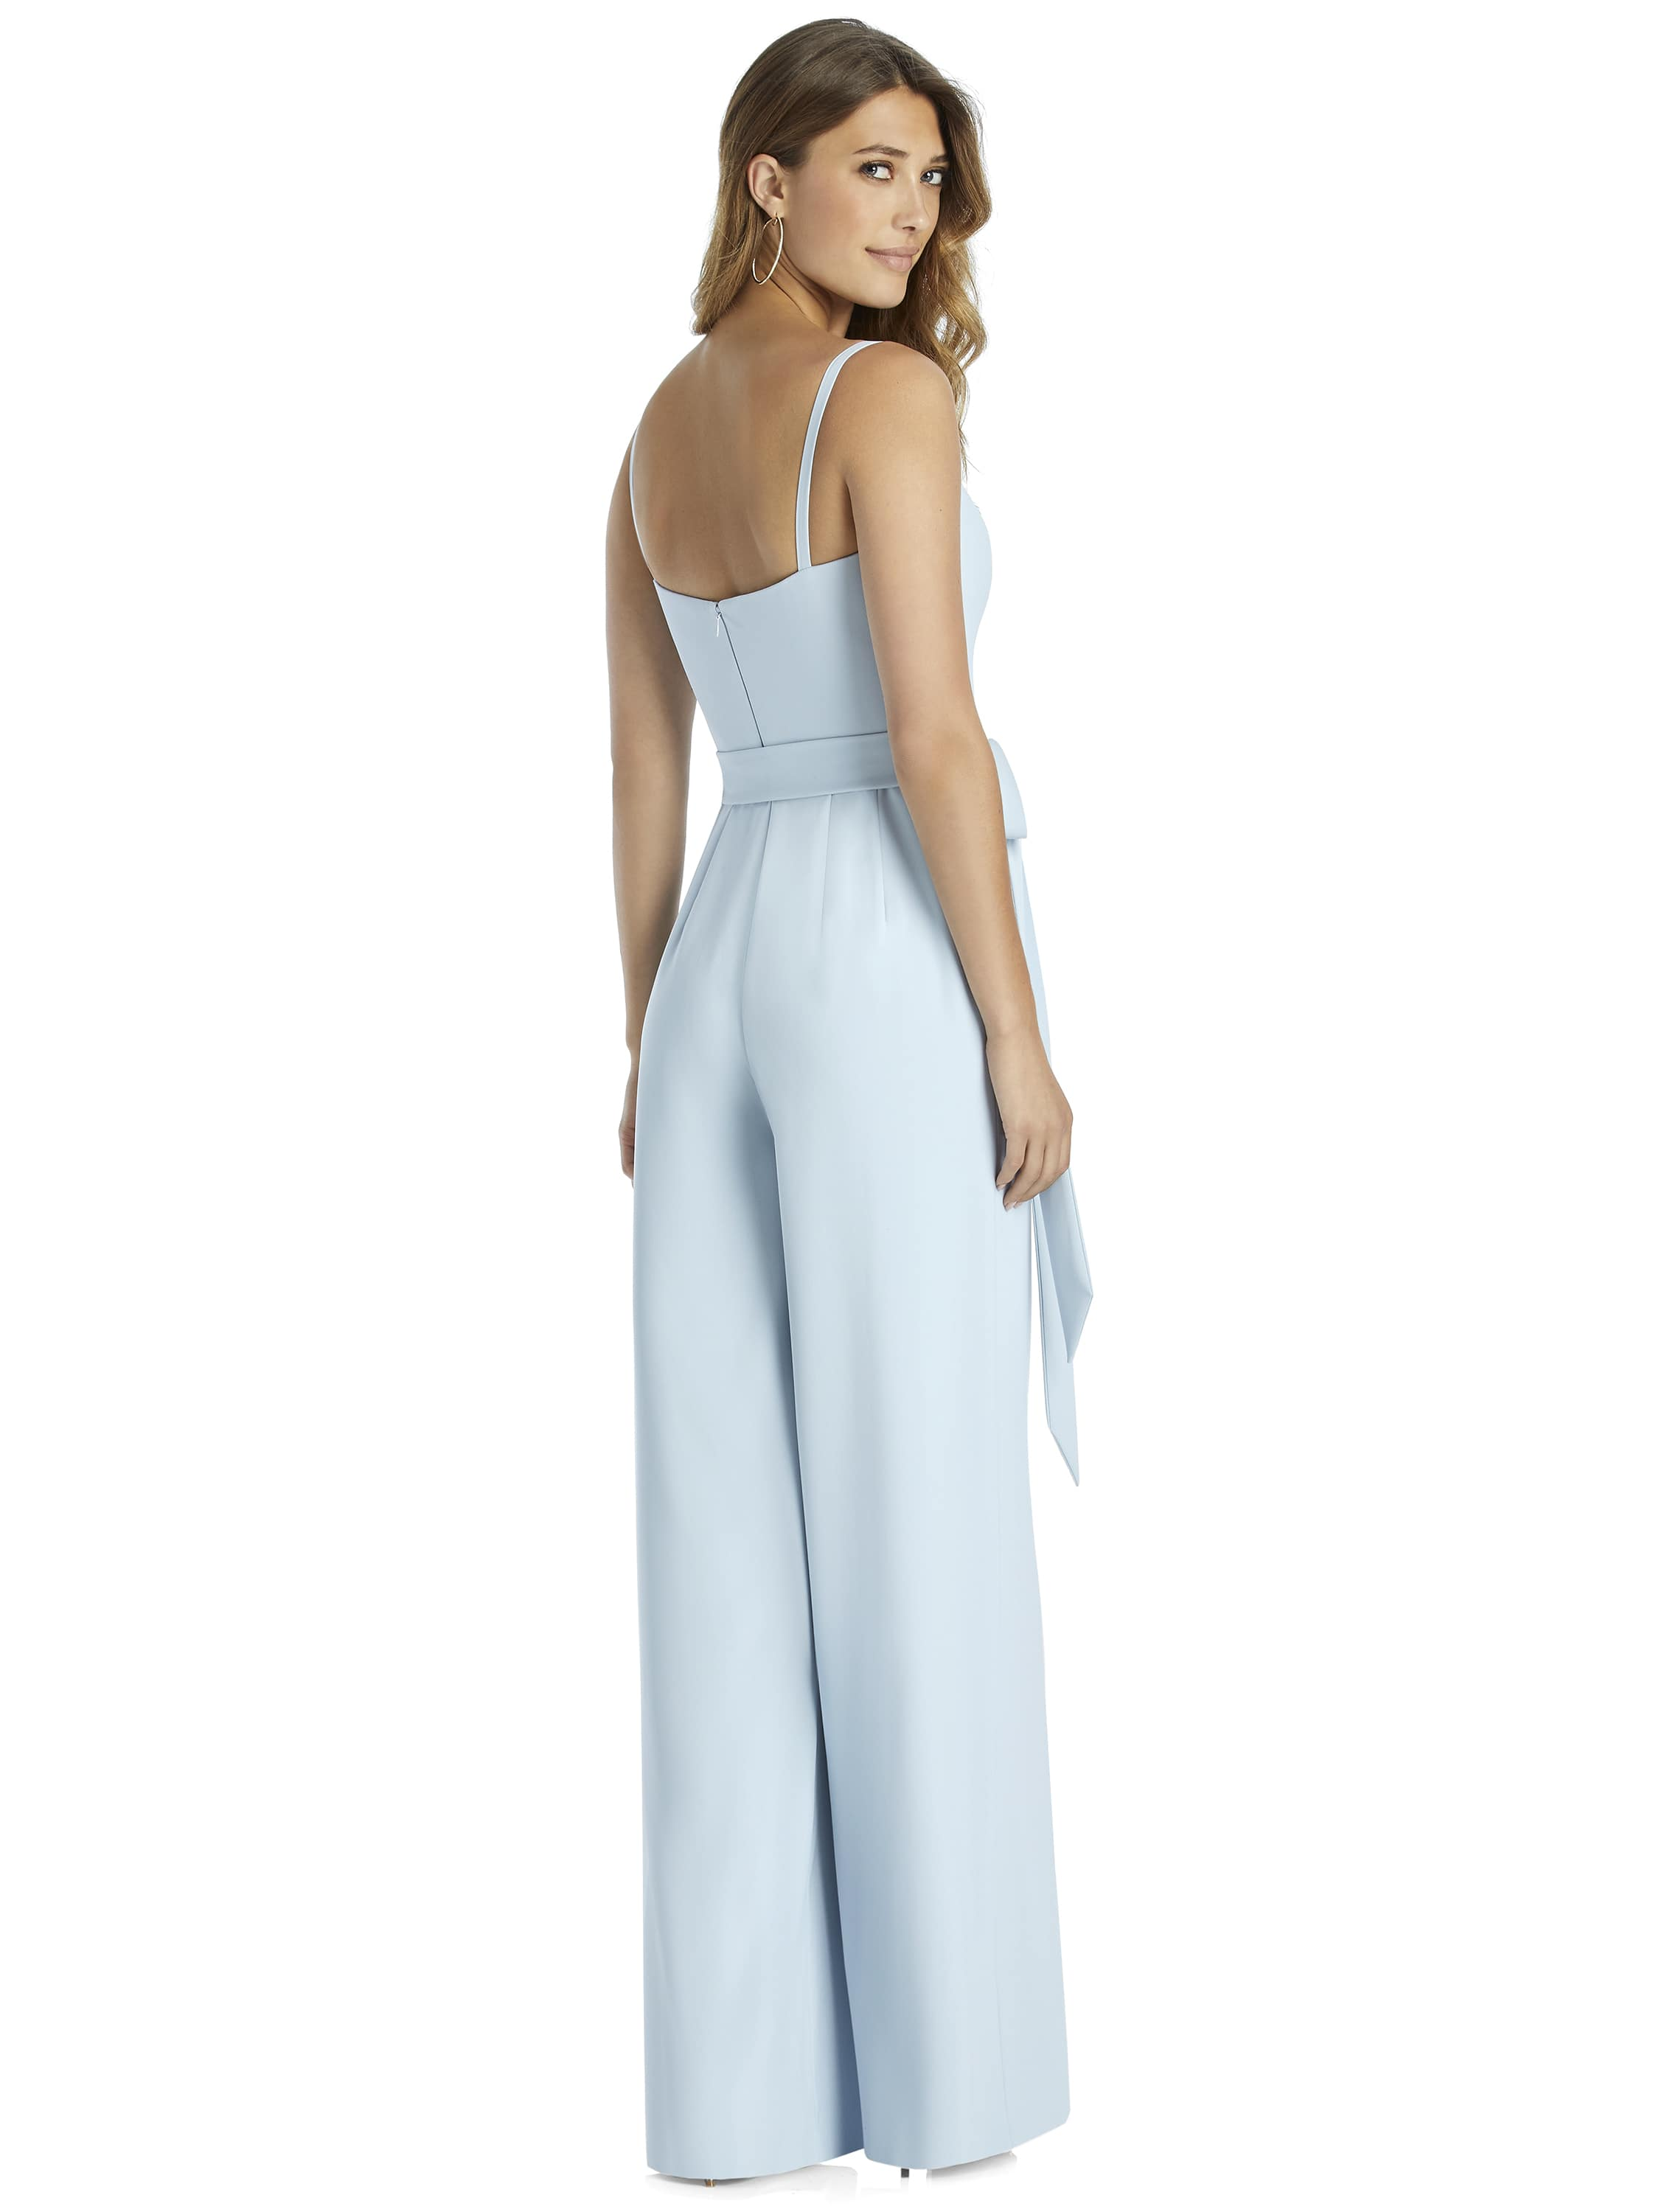 Back of 3045 style jumpsuit by Dessy Group with bow detail